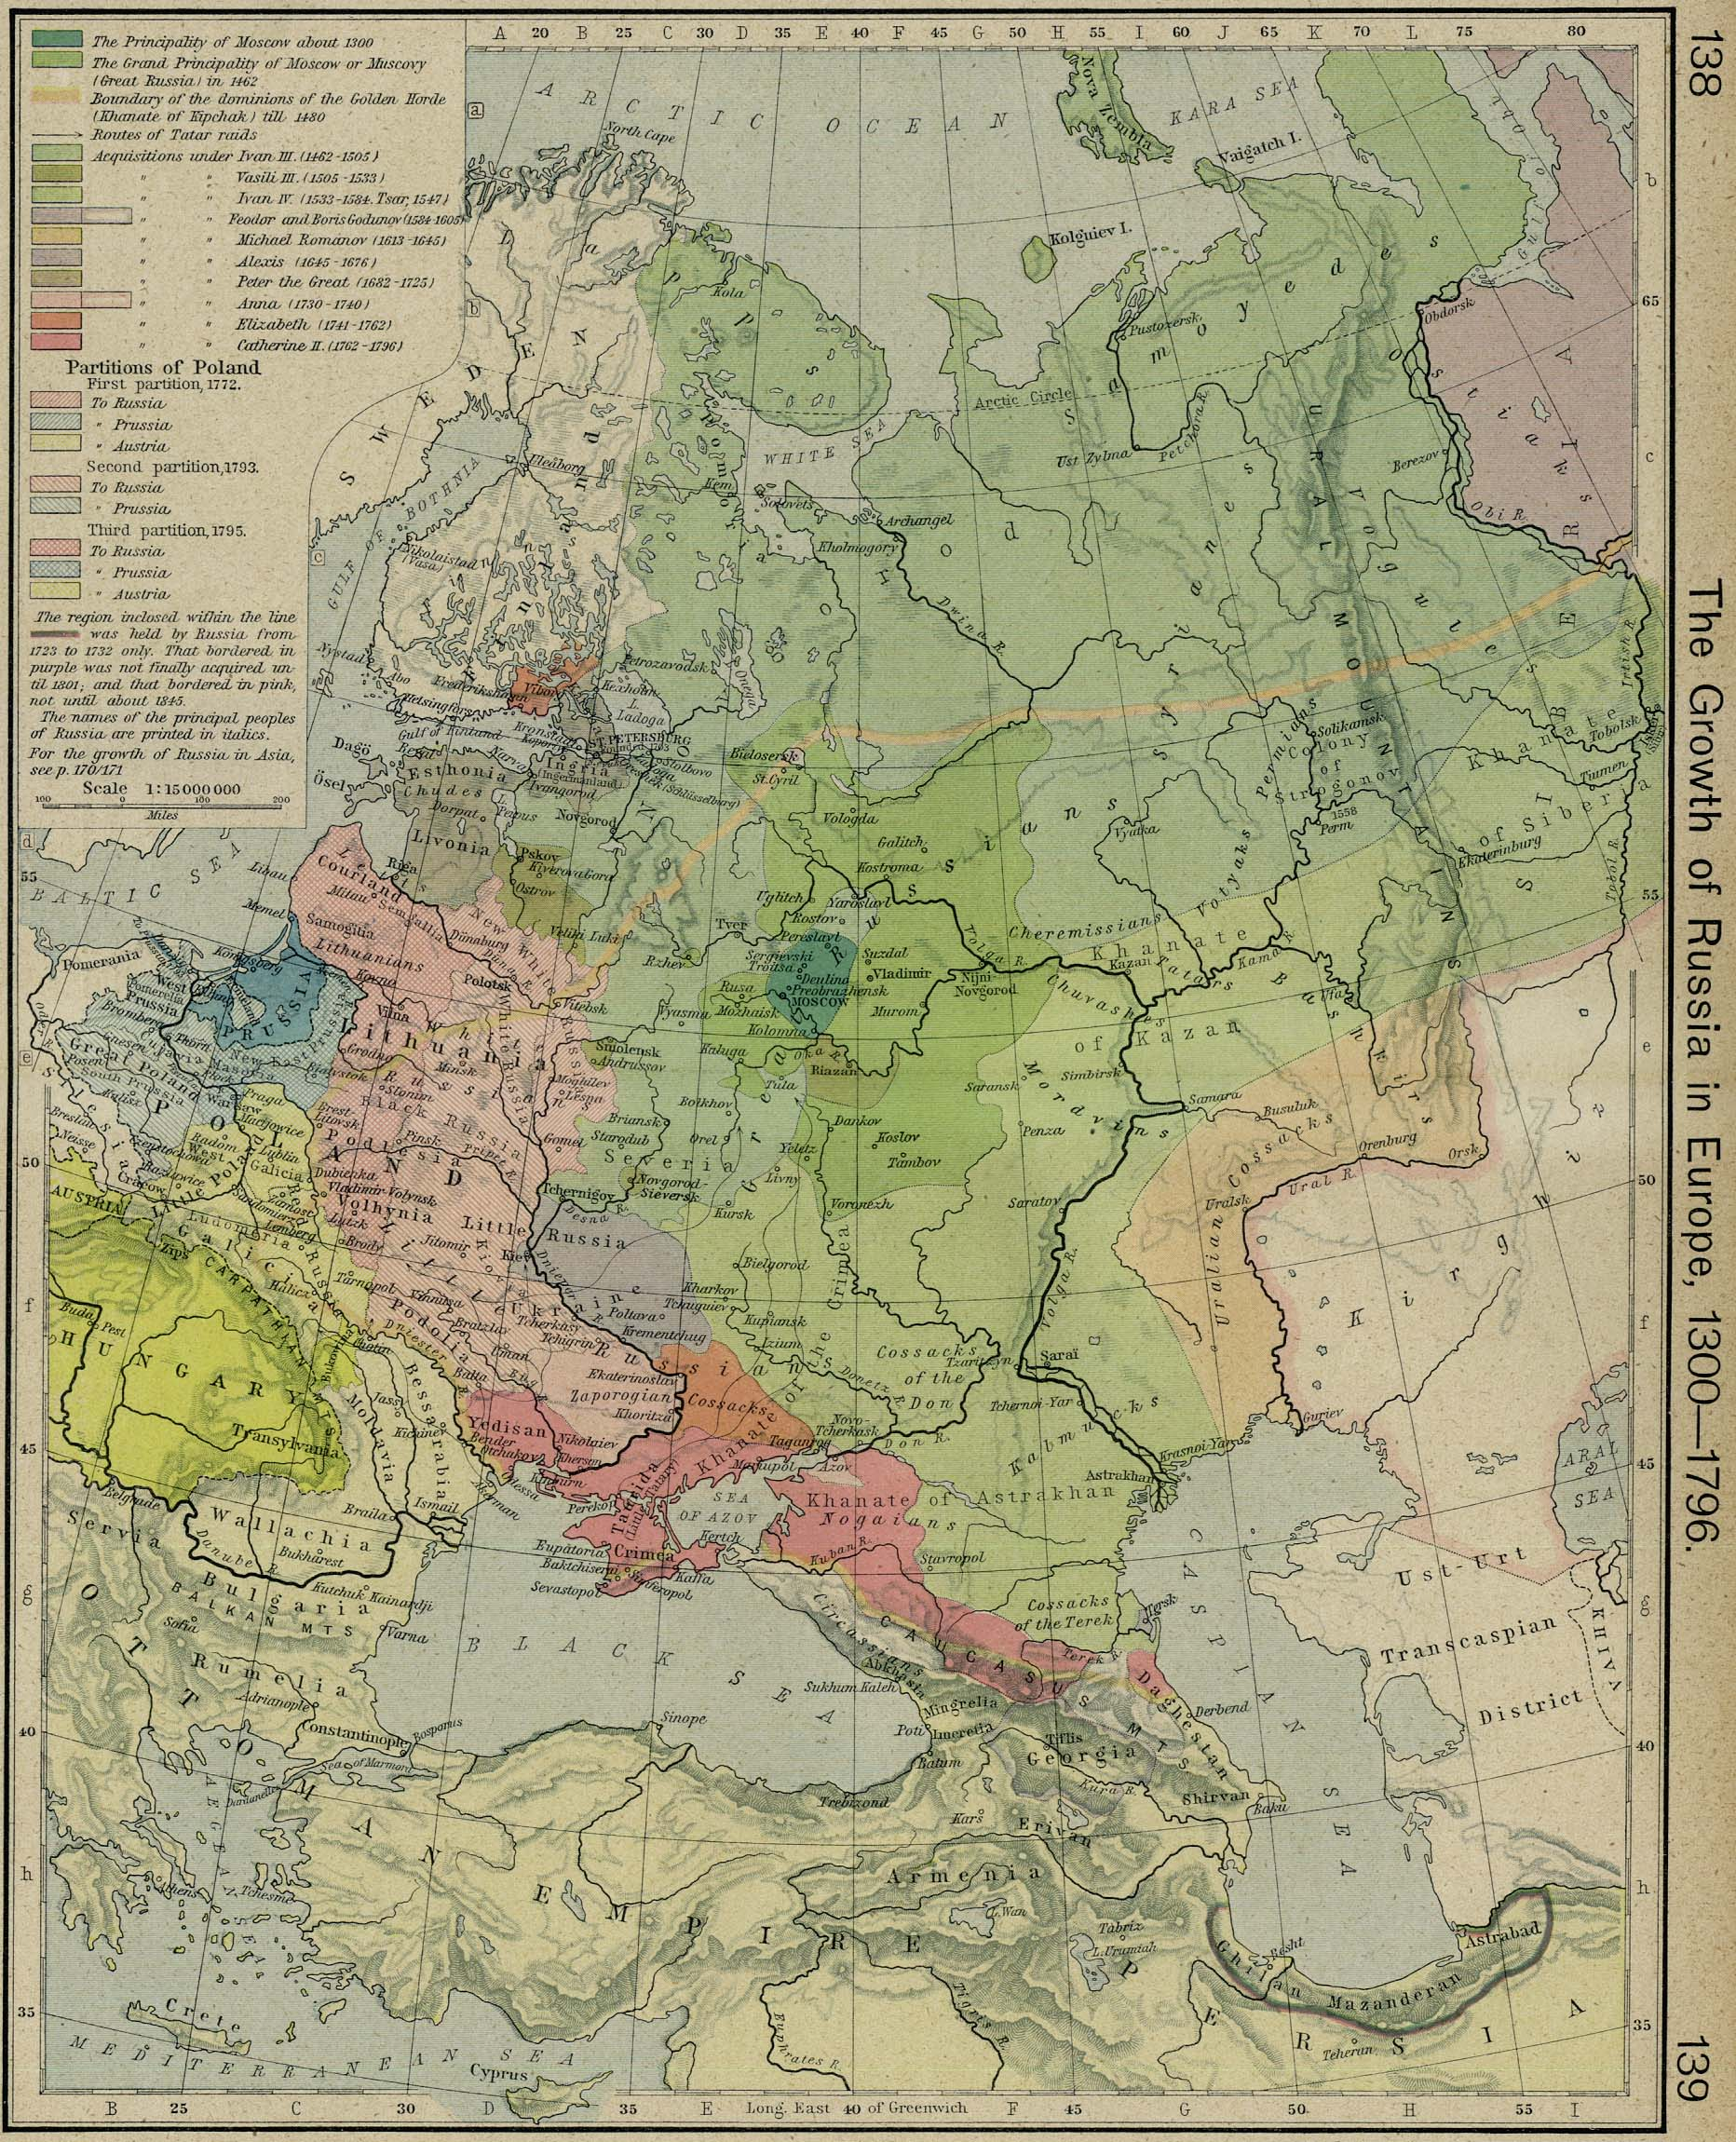 Russia: WHKMLA : Historical Atlas, Russian Empire / USSR : Europe